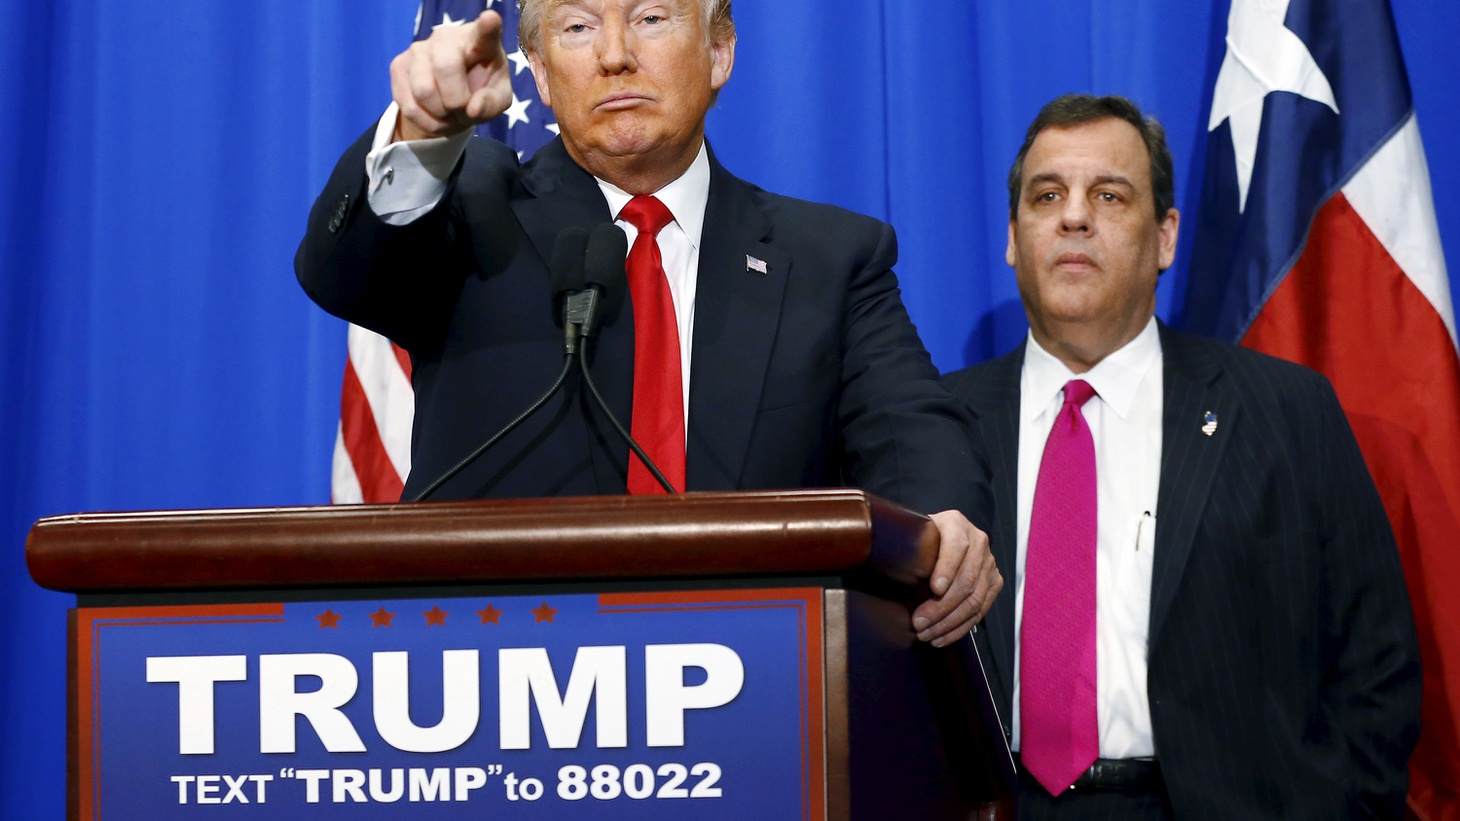 Chris Christie endorses Trump, closing Guantánamo, and iPhone security.